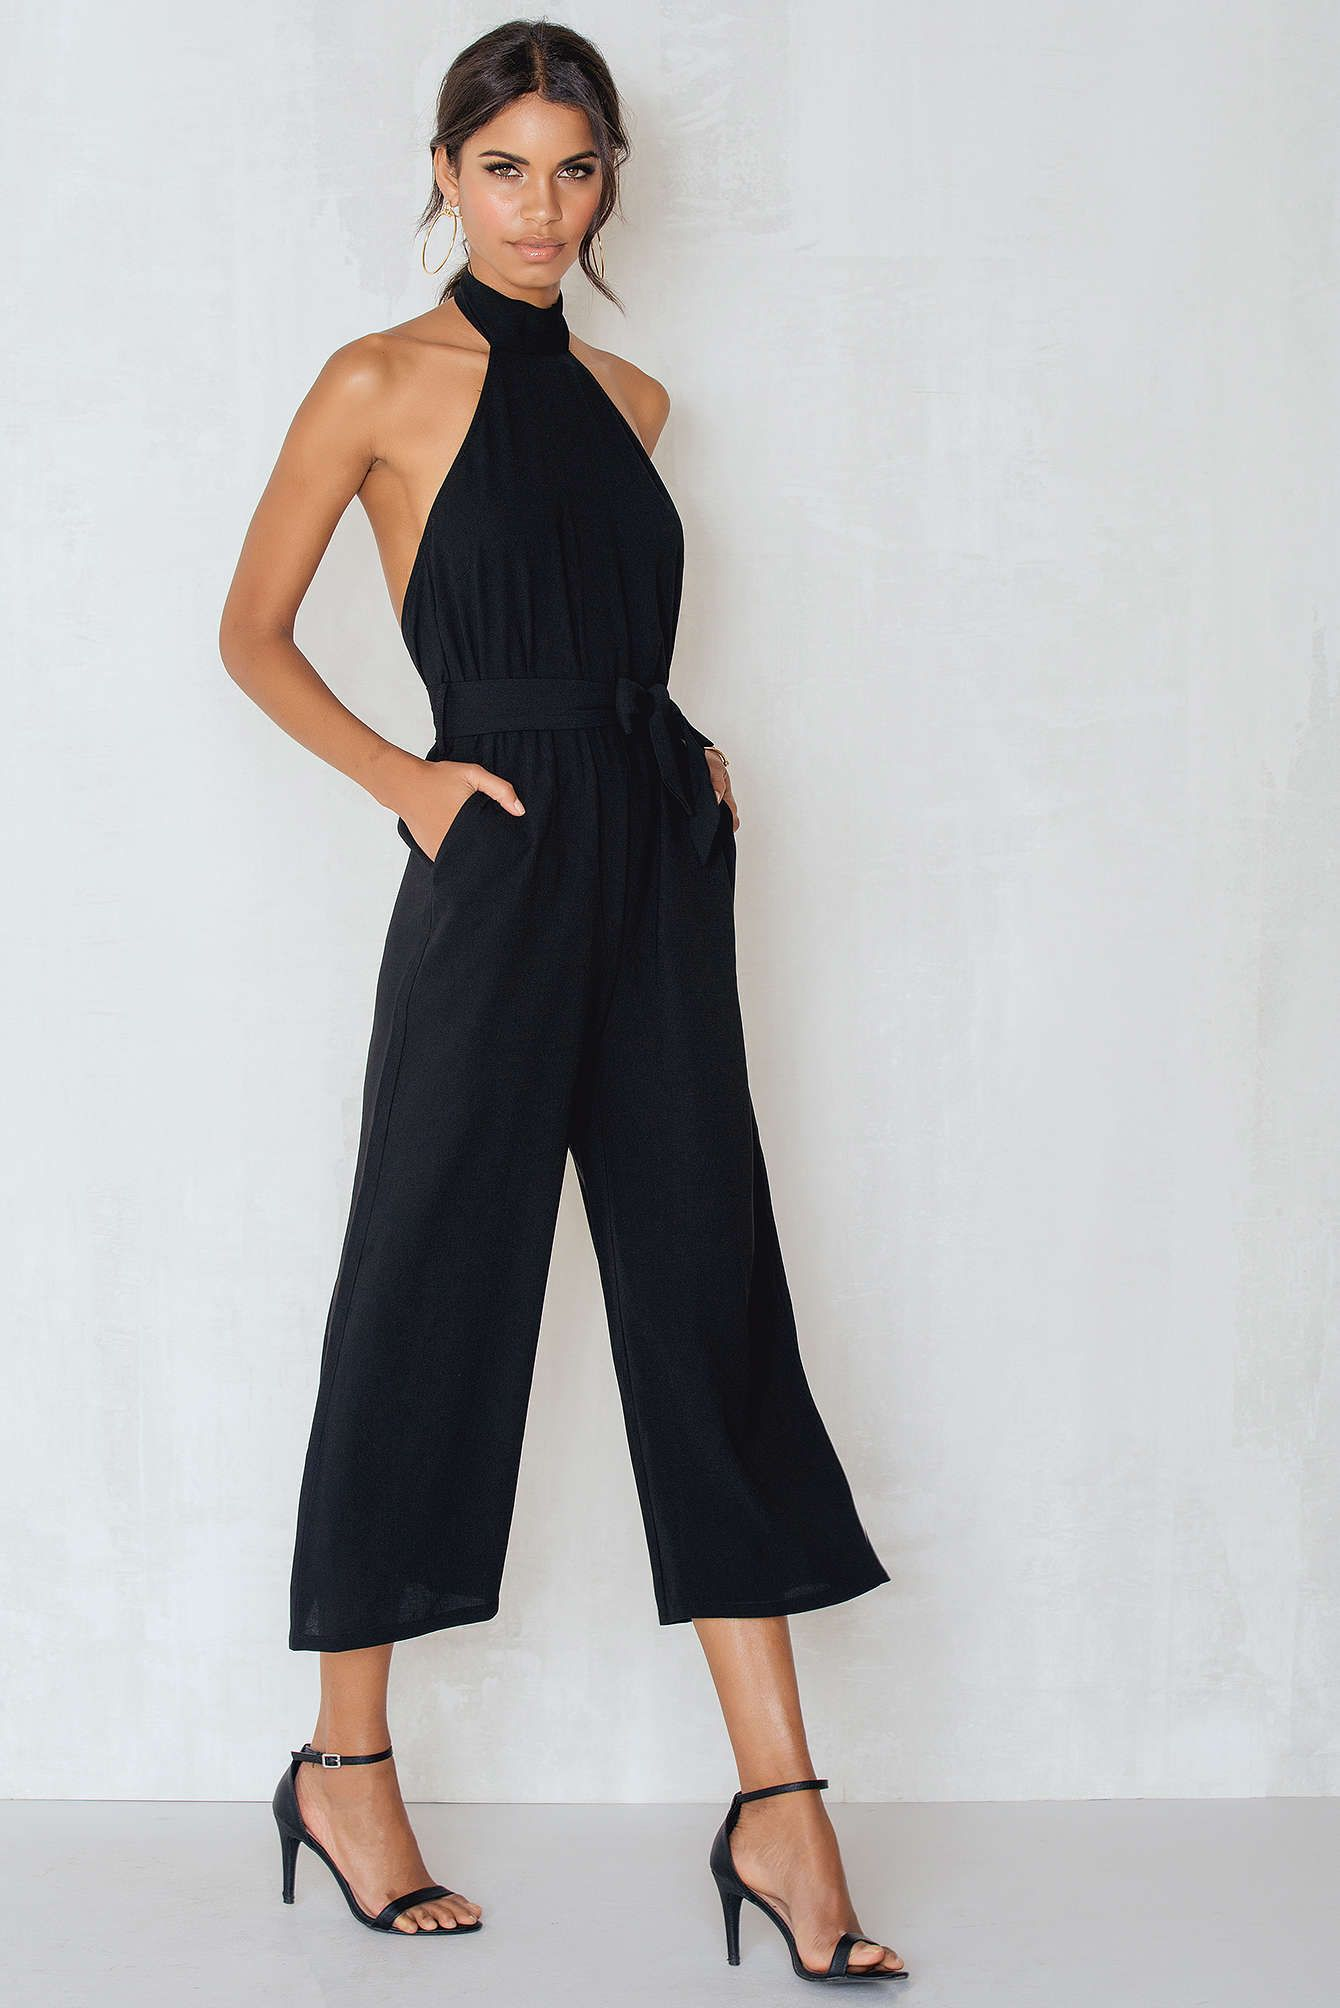 3e813f6a69bc Love jumpsuits! The Culotte Tie Neck Jumpsuit by NA-KD trend comes in black  and features the perfect jumpsuit